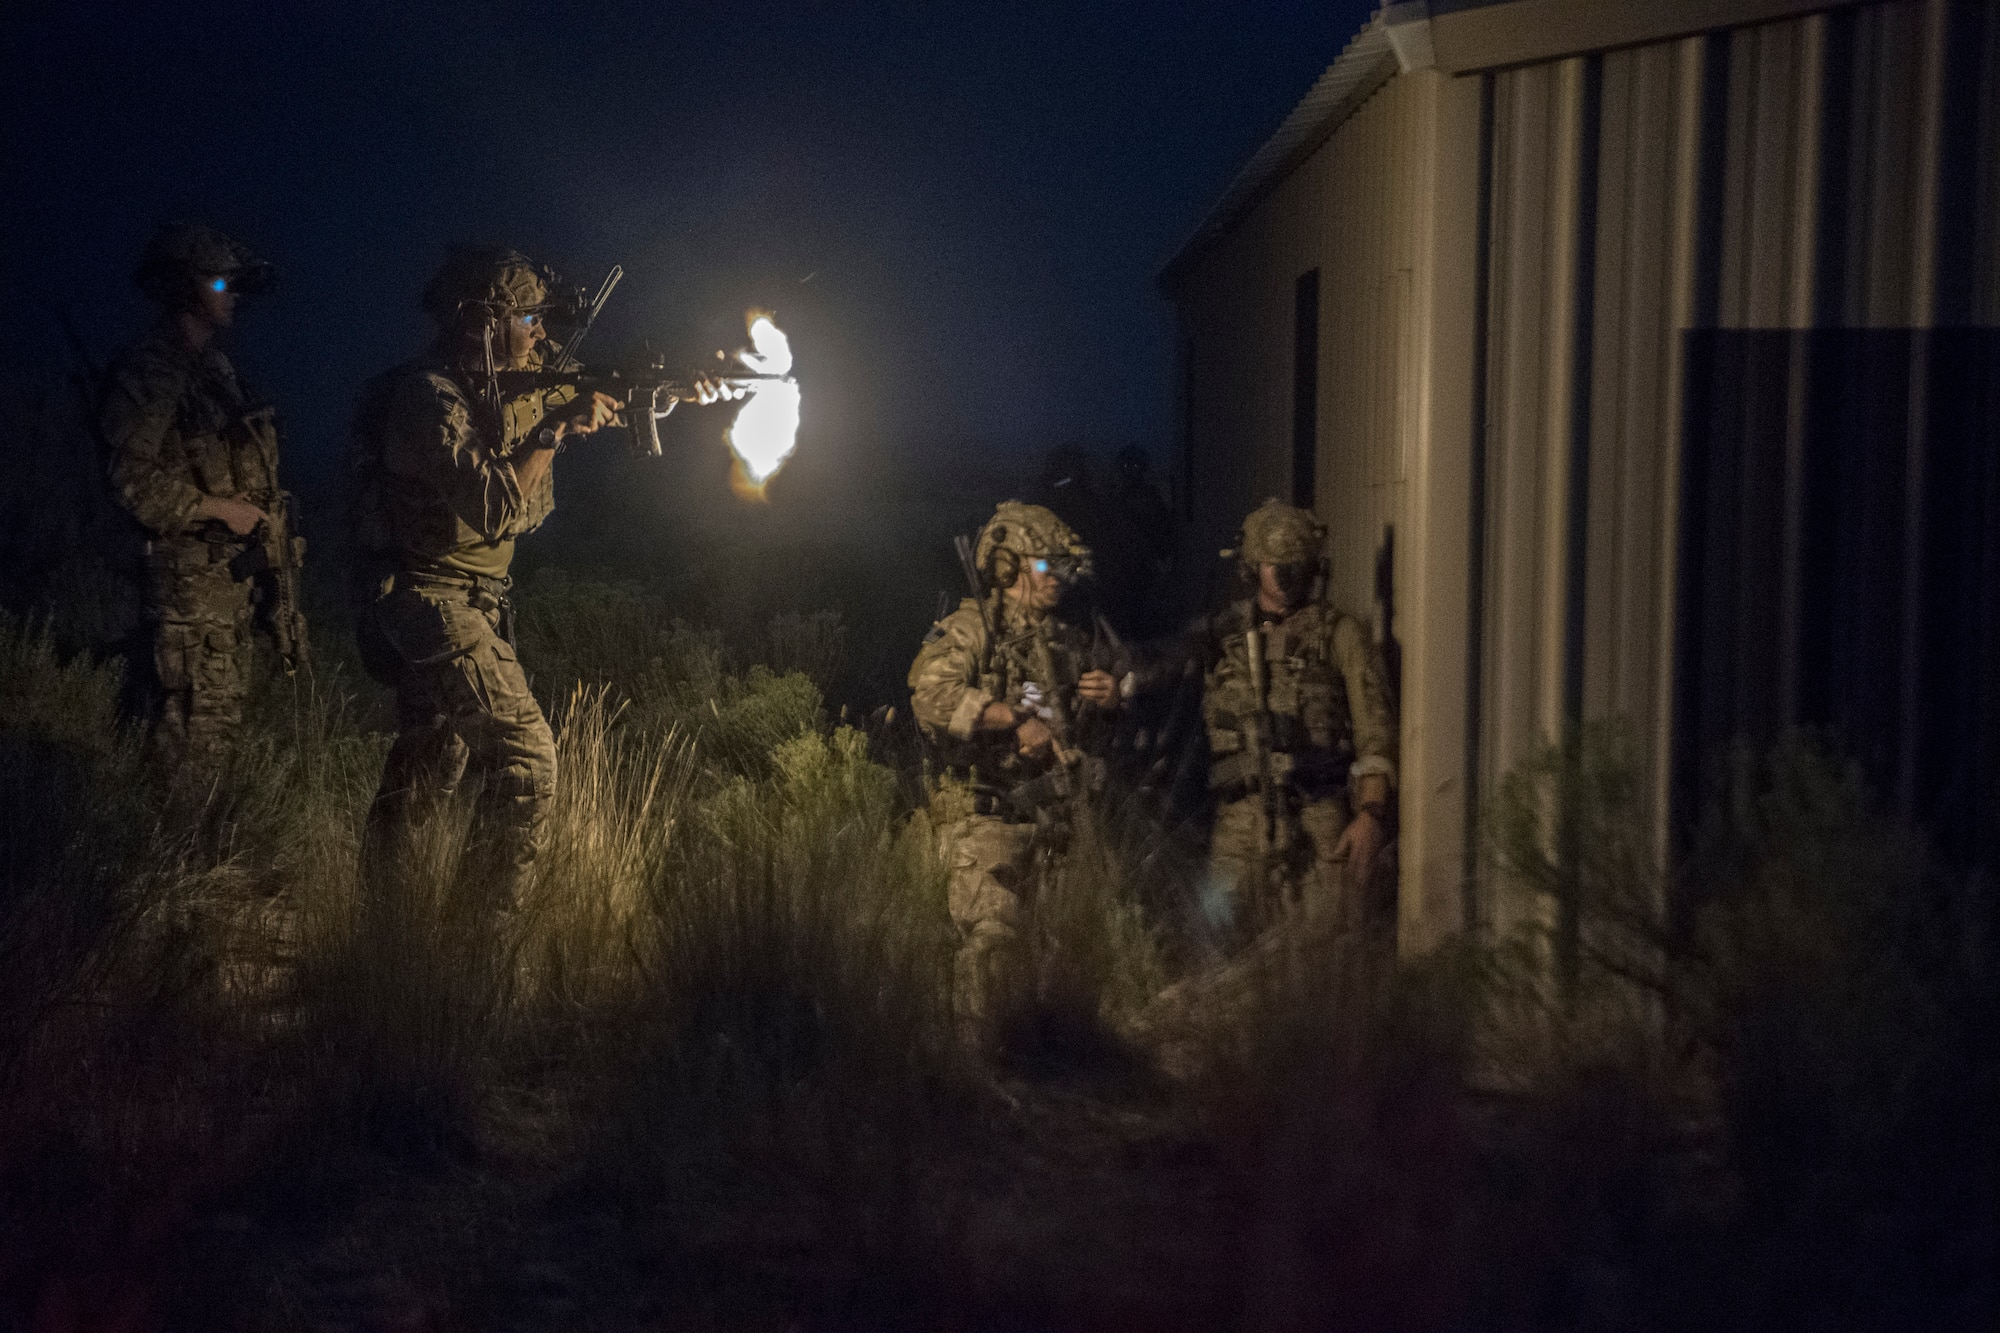 A Special Tactics Airman with the 17th Special Tactics Squadron fires an M4 carbine during Jaded Thunder at Mountain Home Air Force Base, Idaho, Aug. 20, 2018.